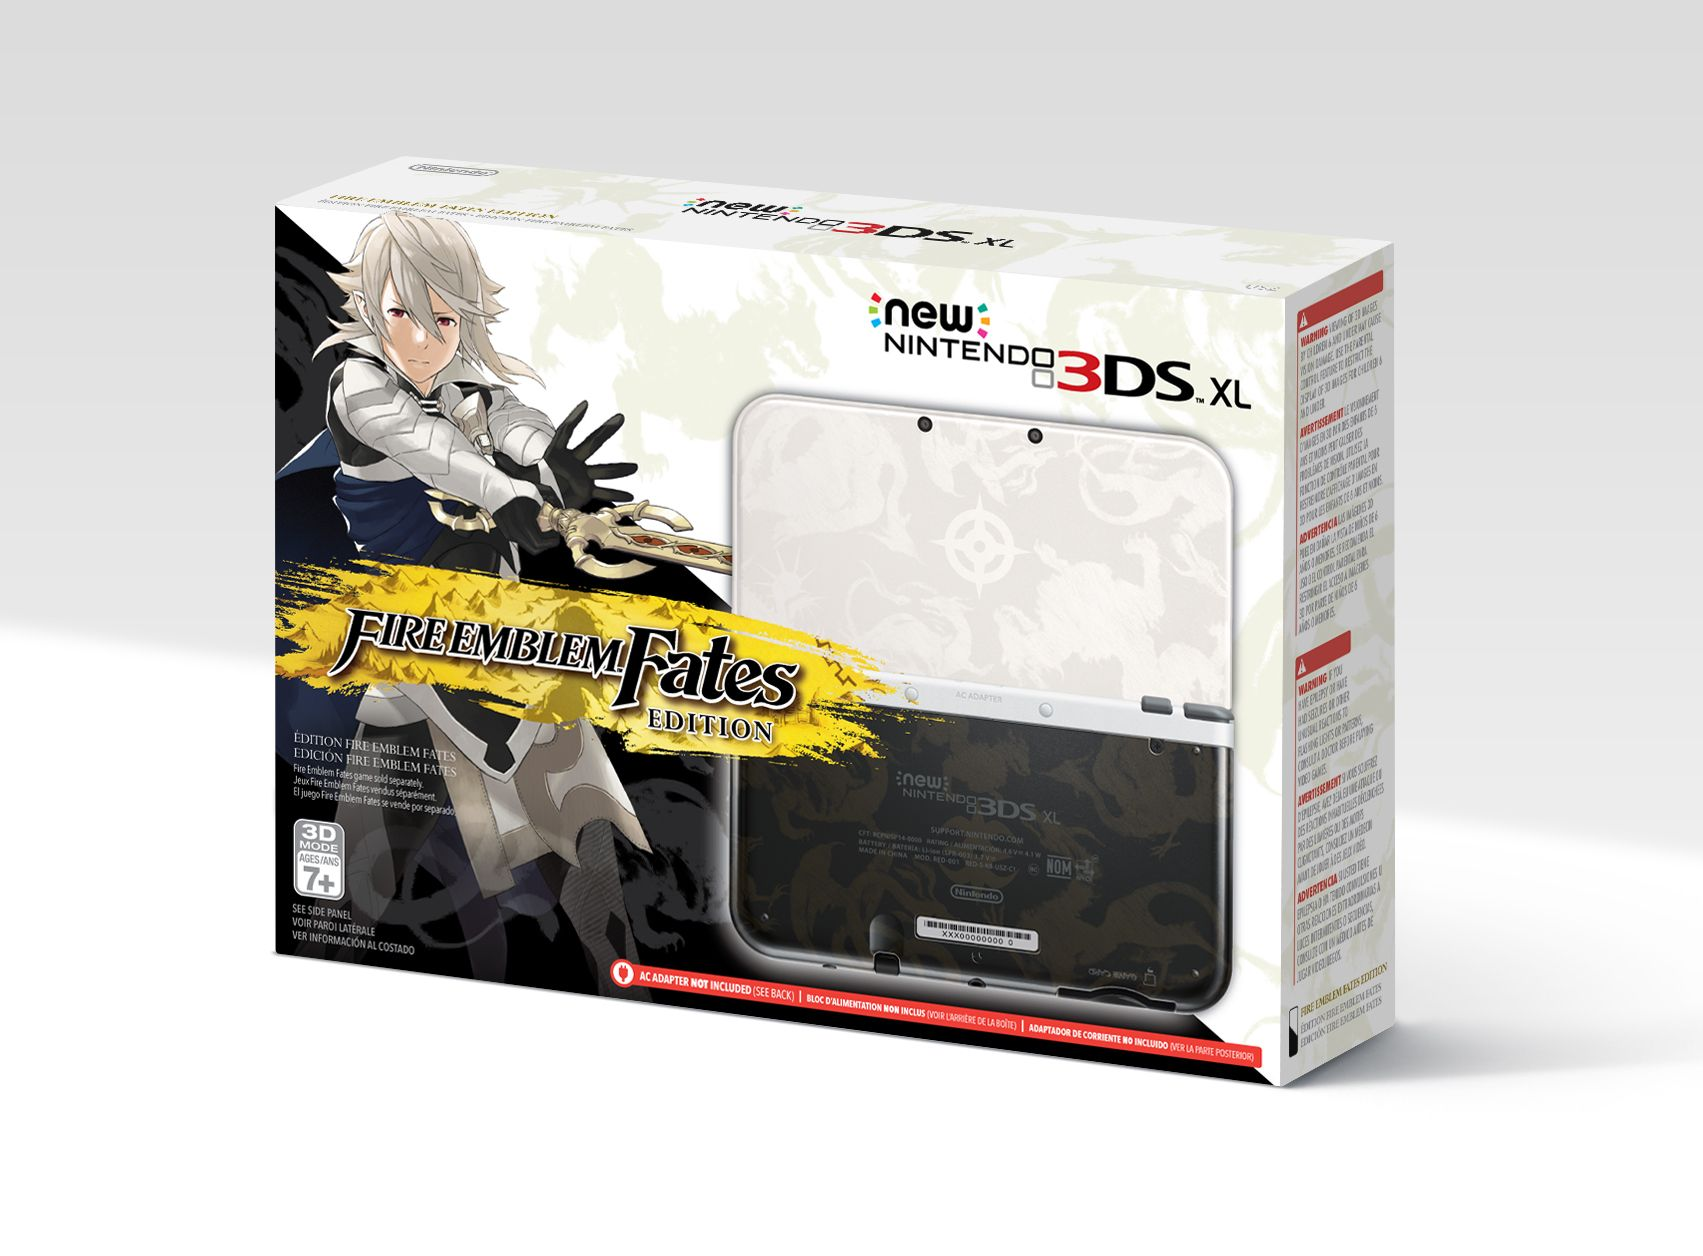 fire-emblem-fates-limited-new-3ds-xl